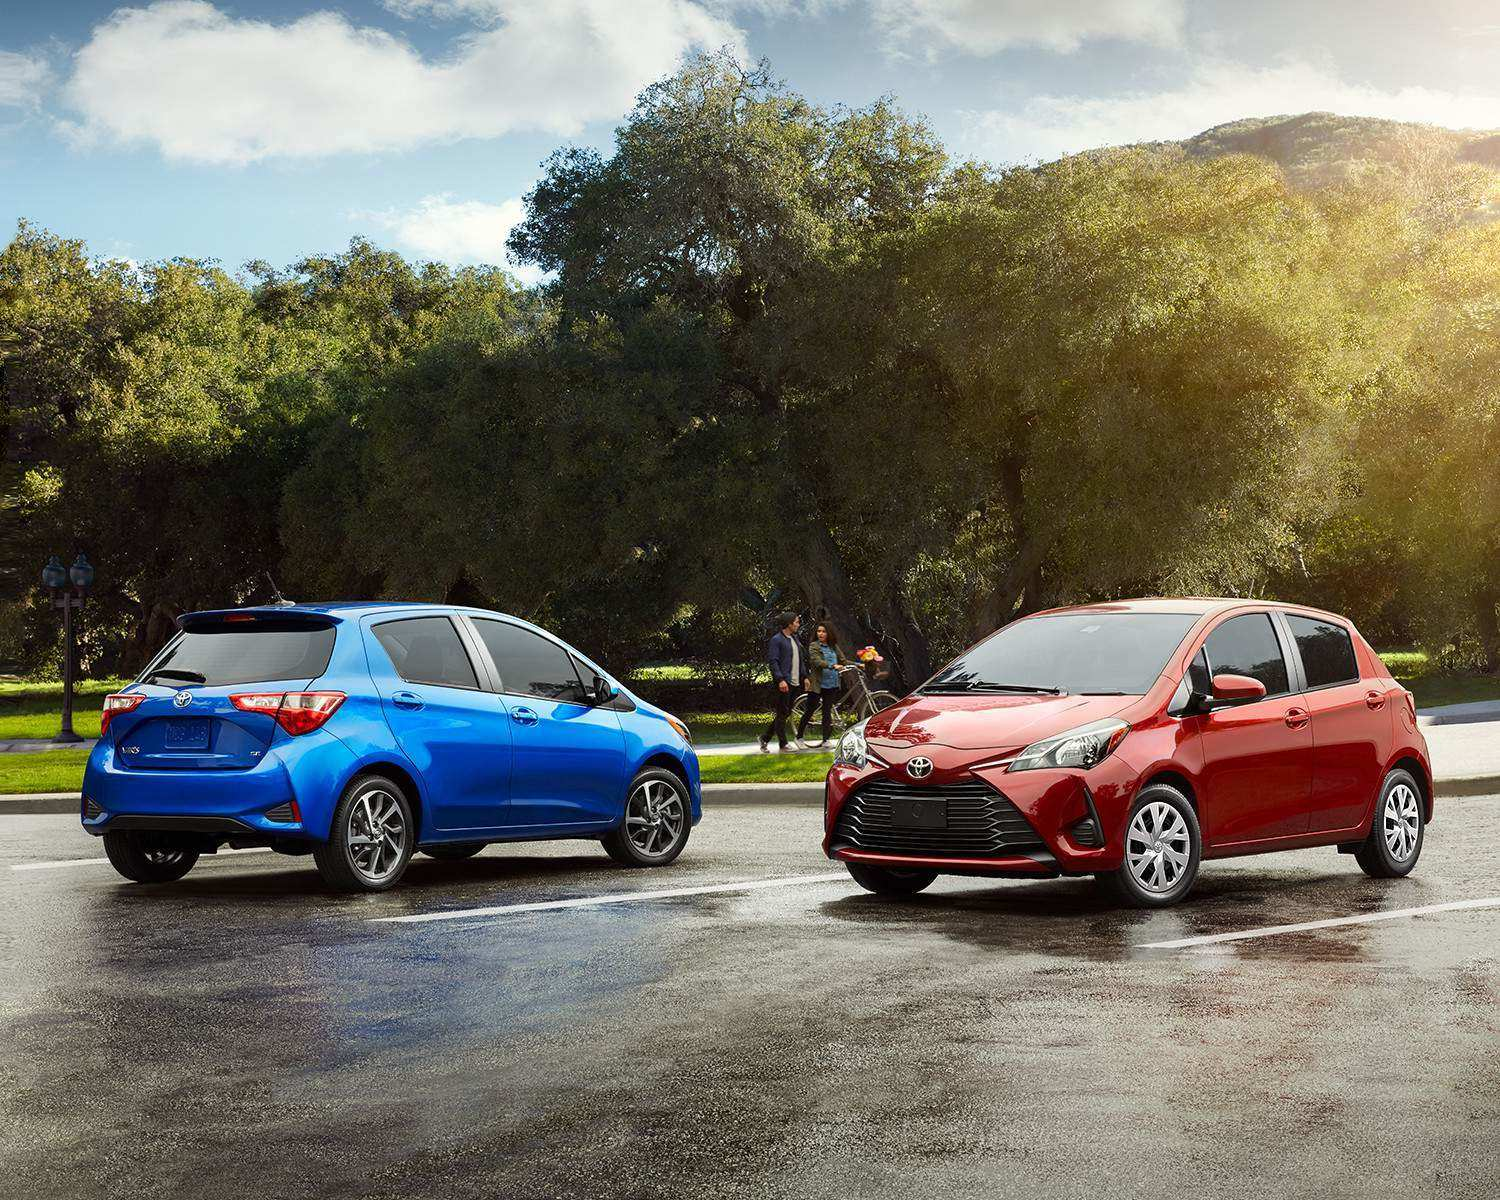 Blue and Red 2017 Toyota Yaris Vehicles Parked Outdoors